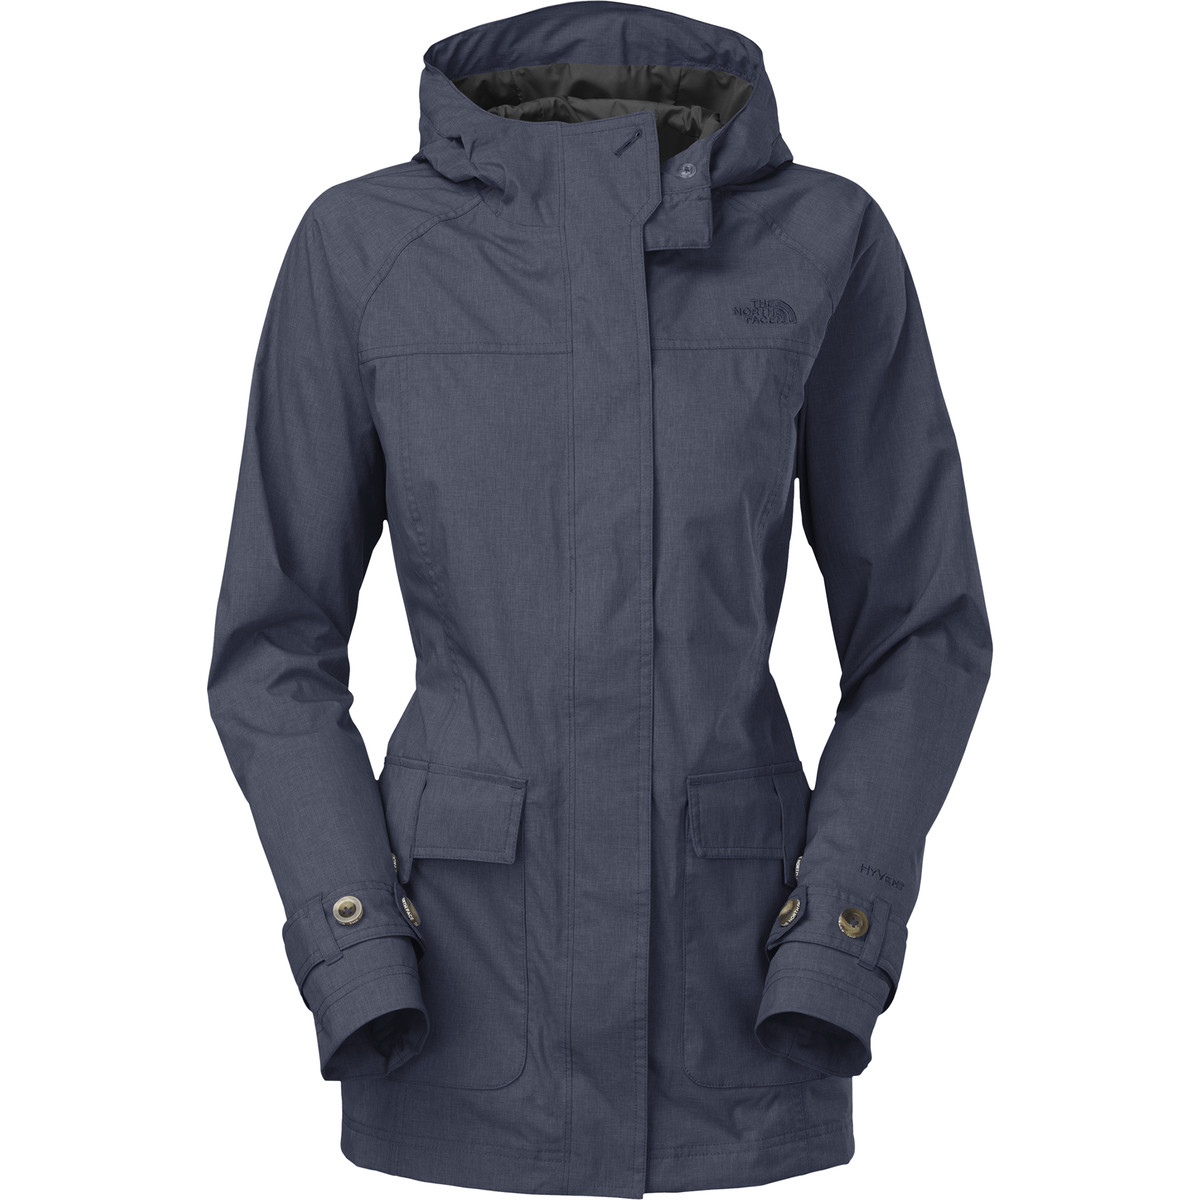 The North Face Carli Jacket